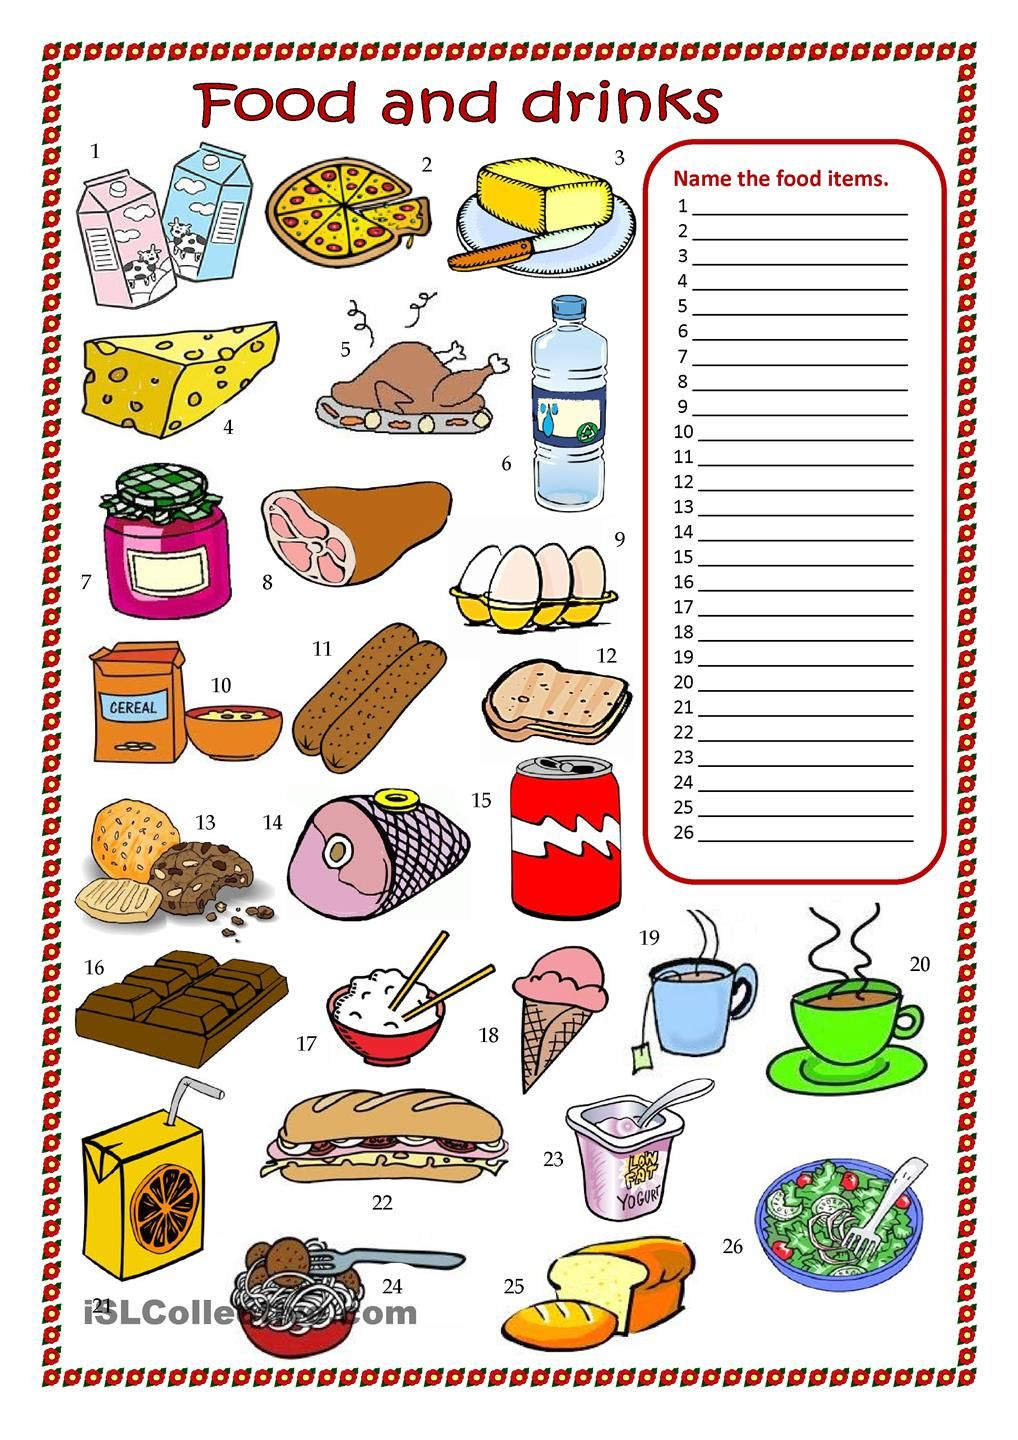 Food and drinks worksheet. | enkku | English food,Food ...